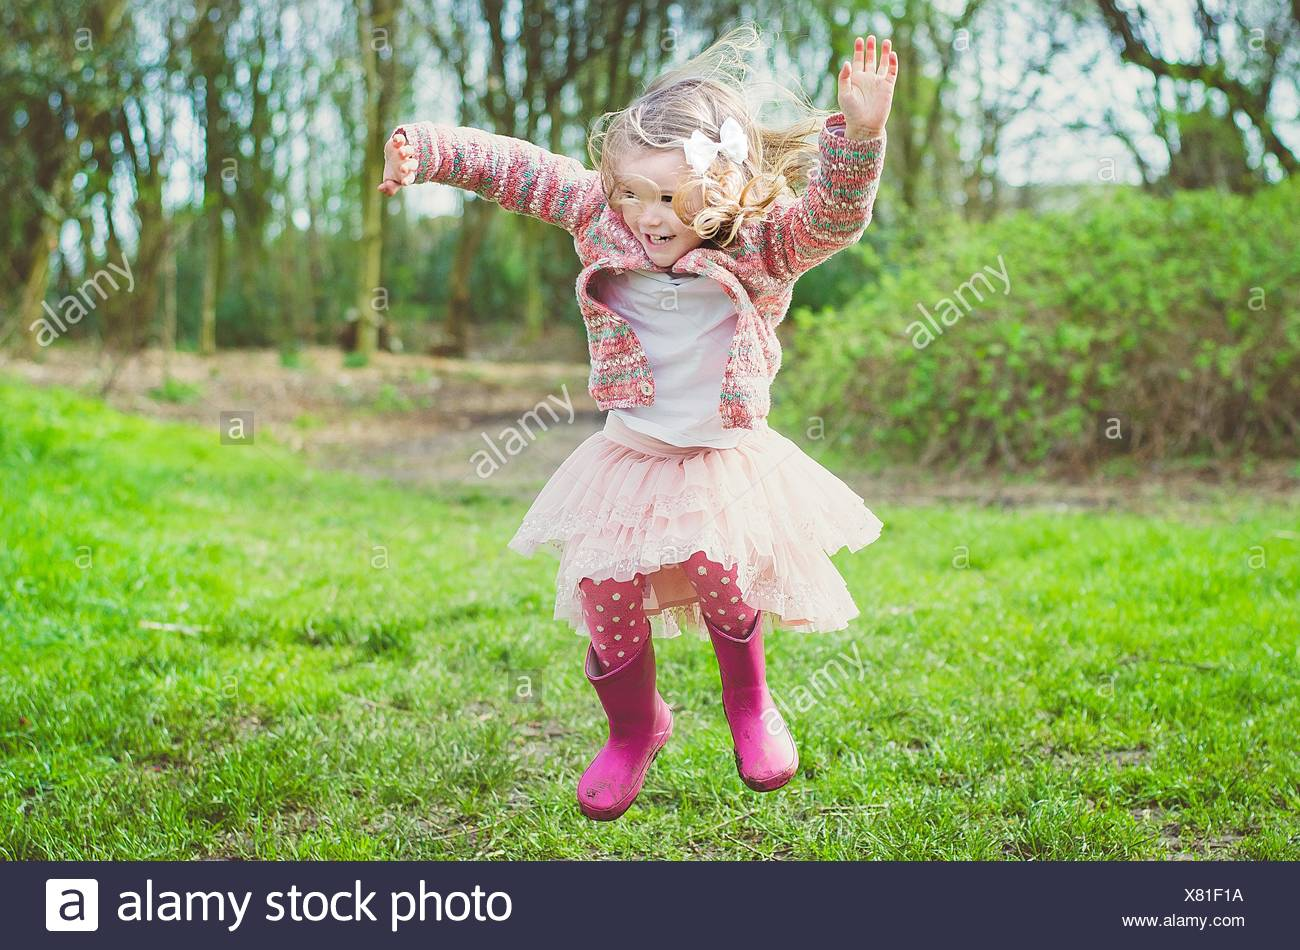 Girl jumping in the air in park - Stock Image